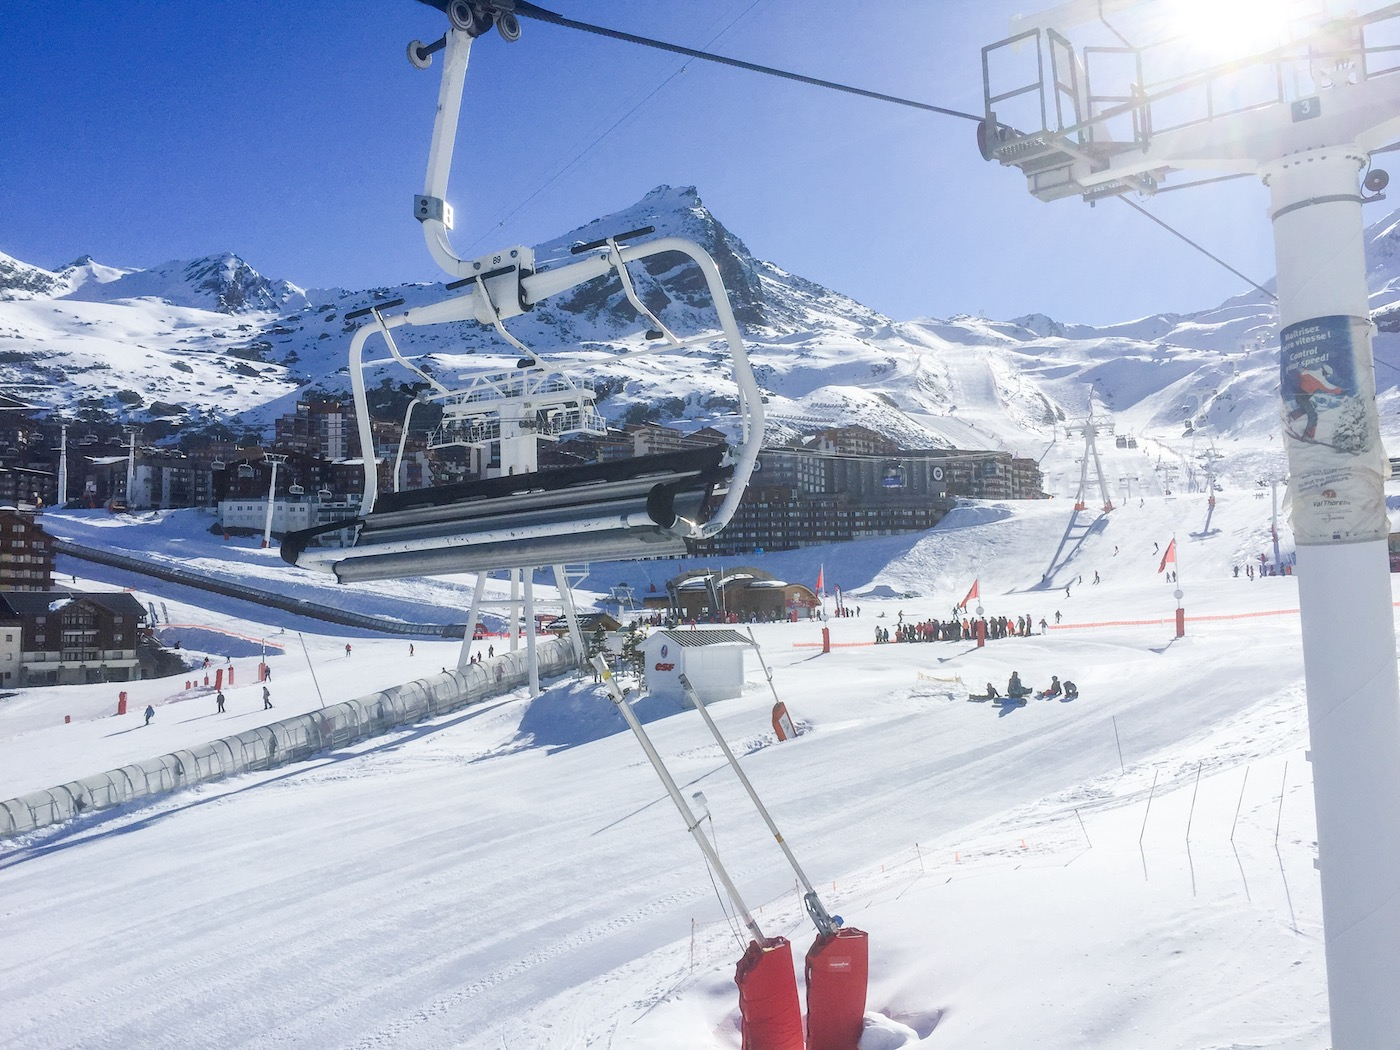 Skilift in Val Thorens